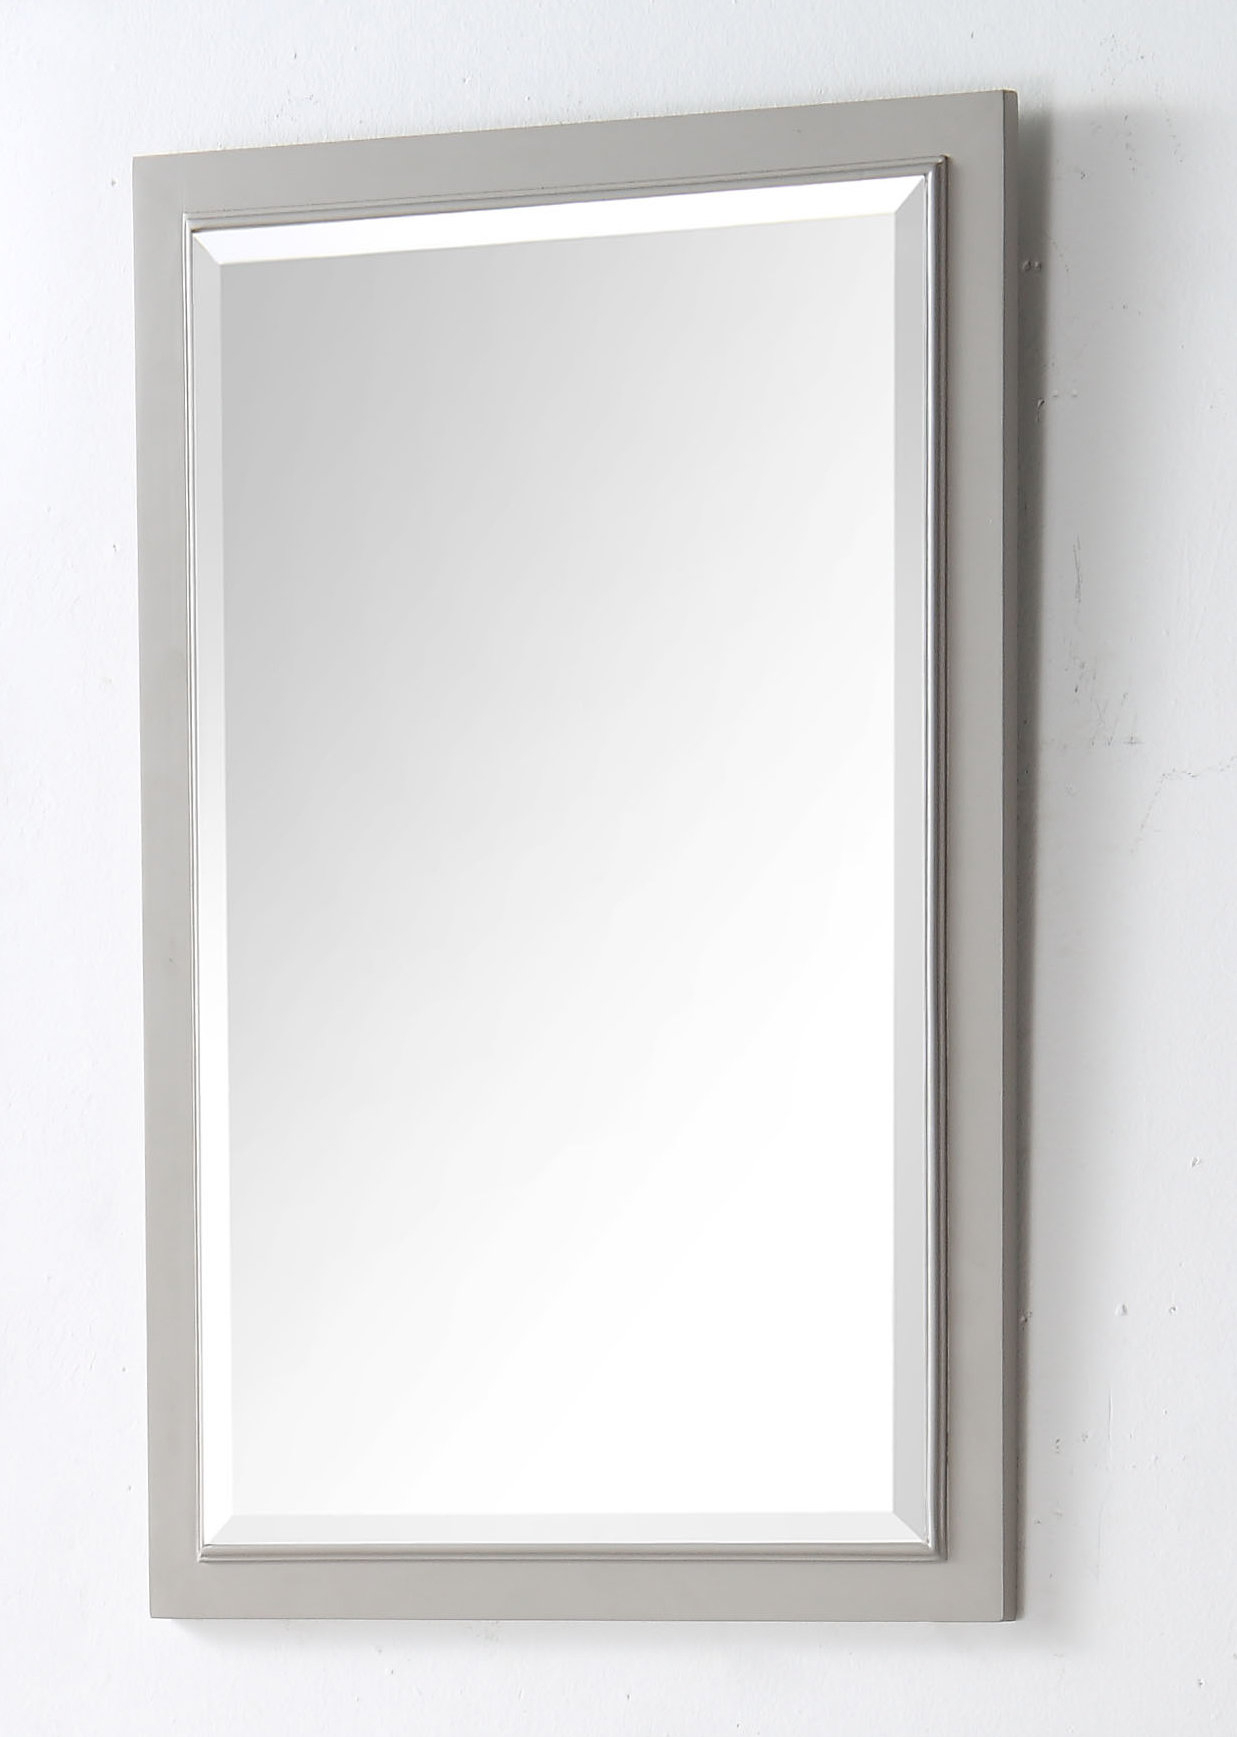 Rectangle Solid Wood Bathroom / Vanity Mirror With Regard To Burgoyne Vanity Mirrors (View 13 of 20)